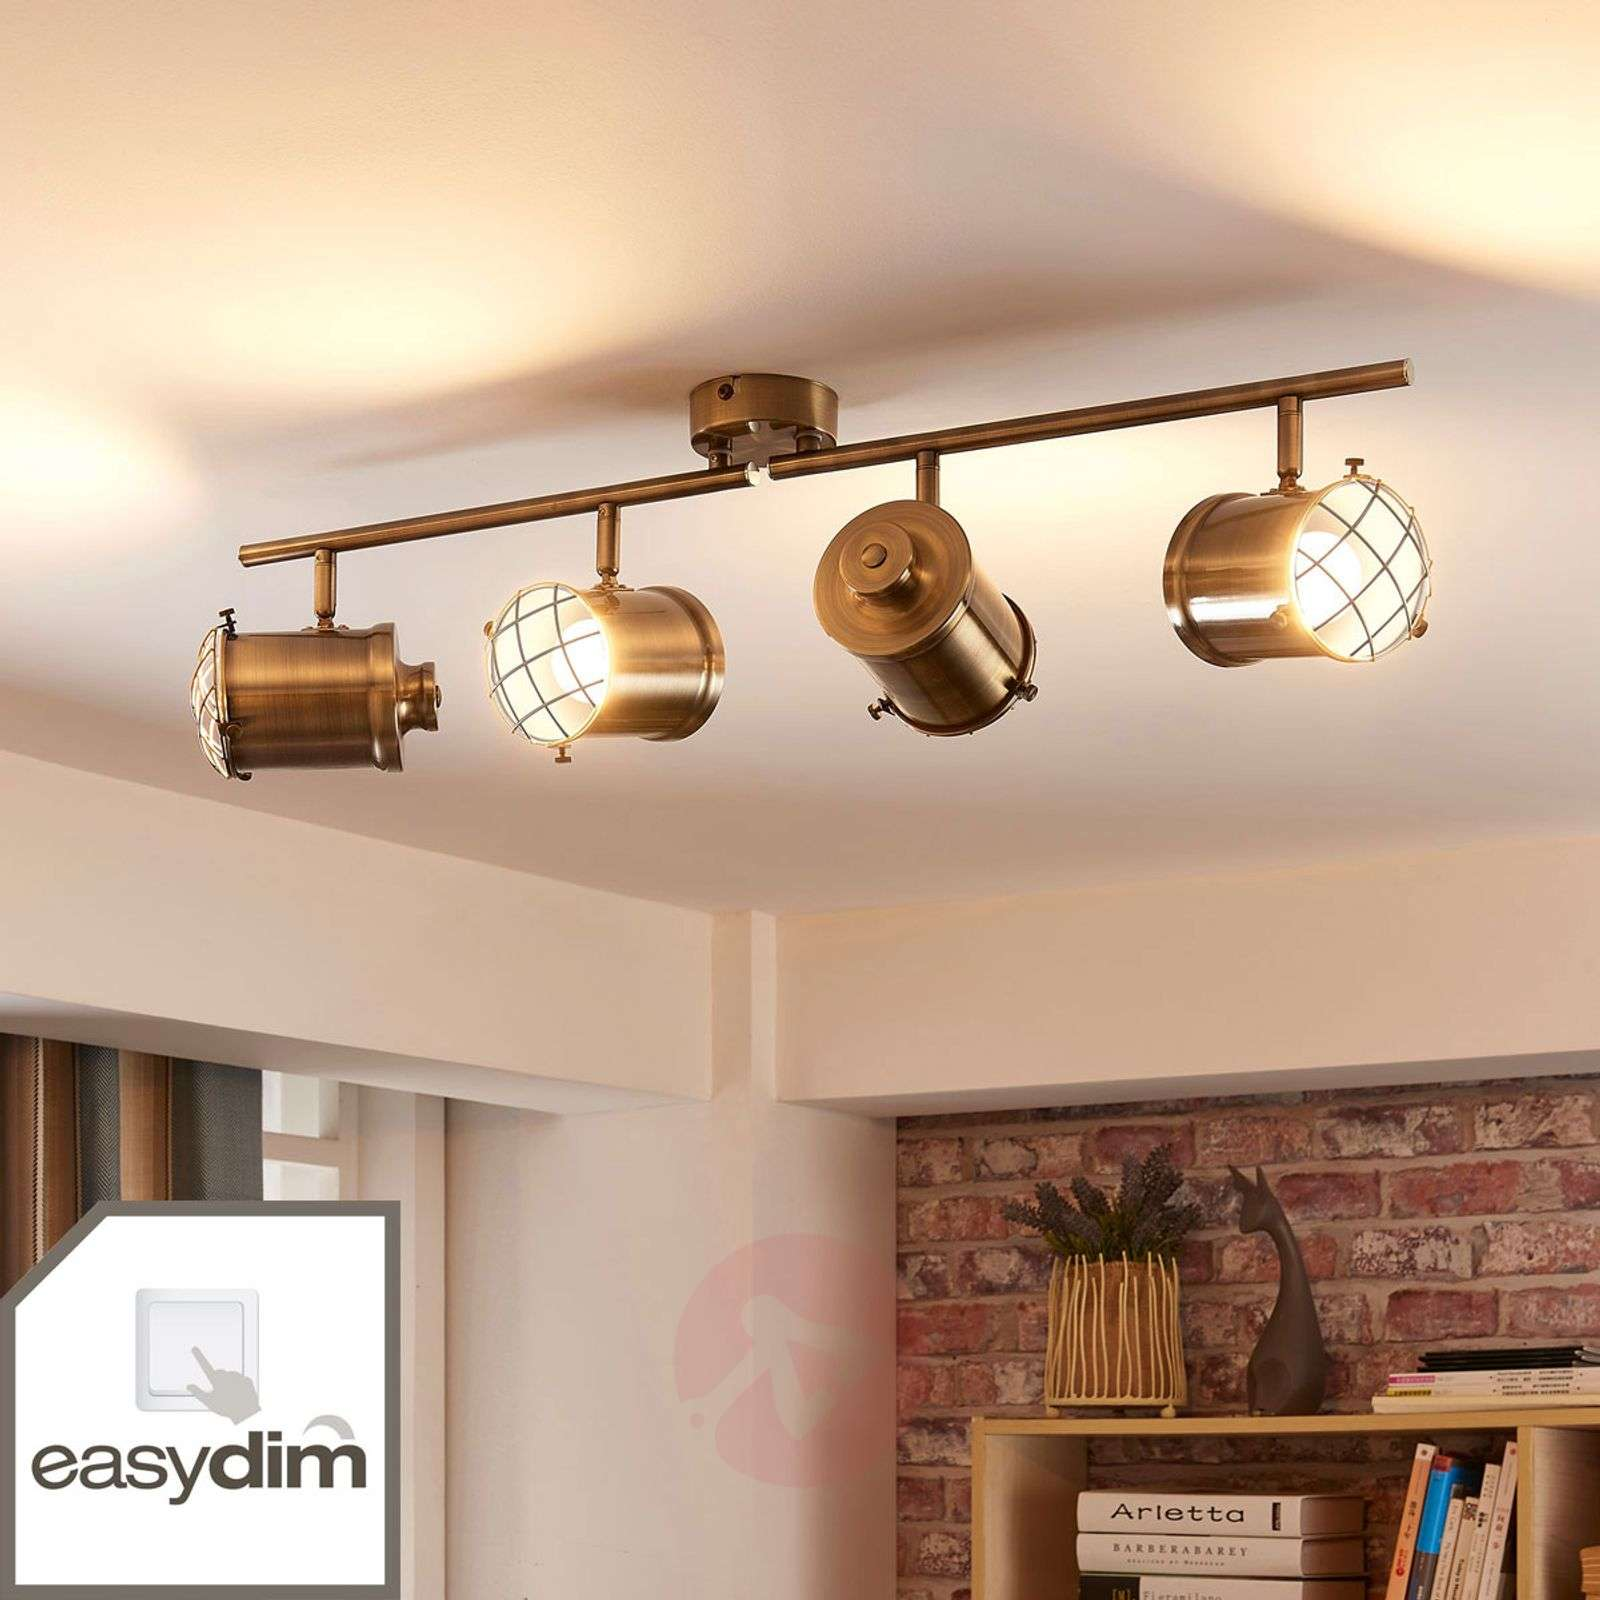 4-bulb LED ceiling light Ebbi, Easydim-9621231-02